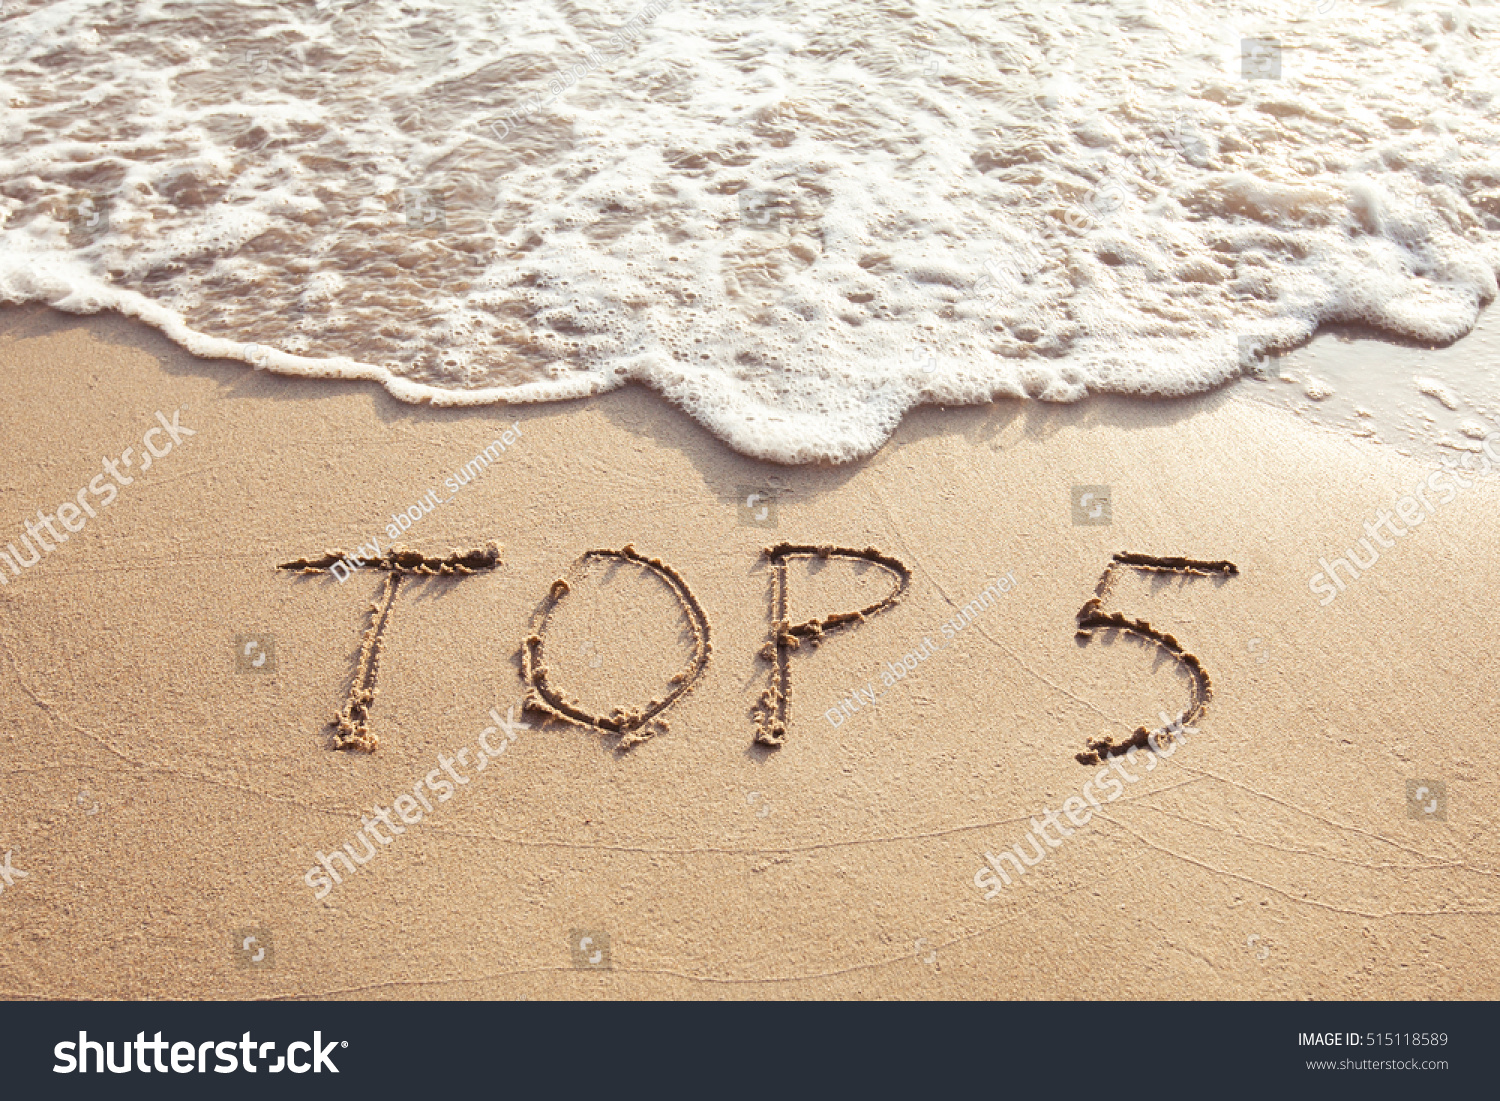 top 5, sign concept, list of five best, text on the sand beach #515118589